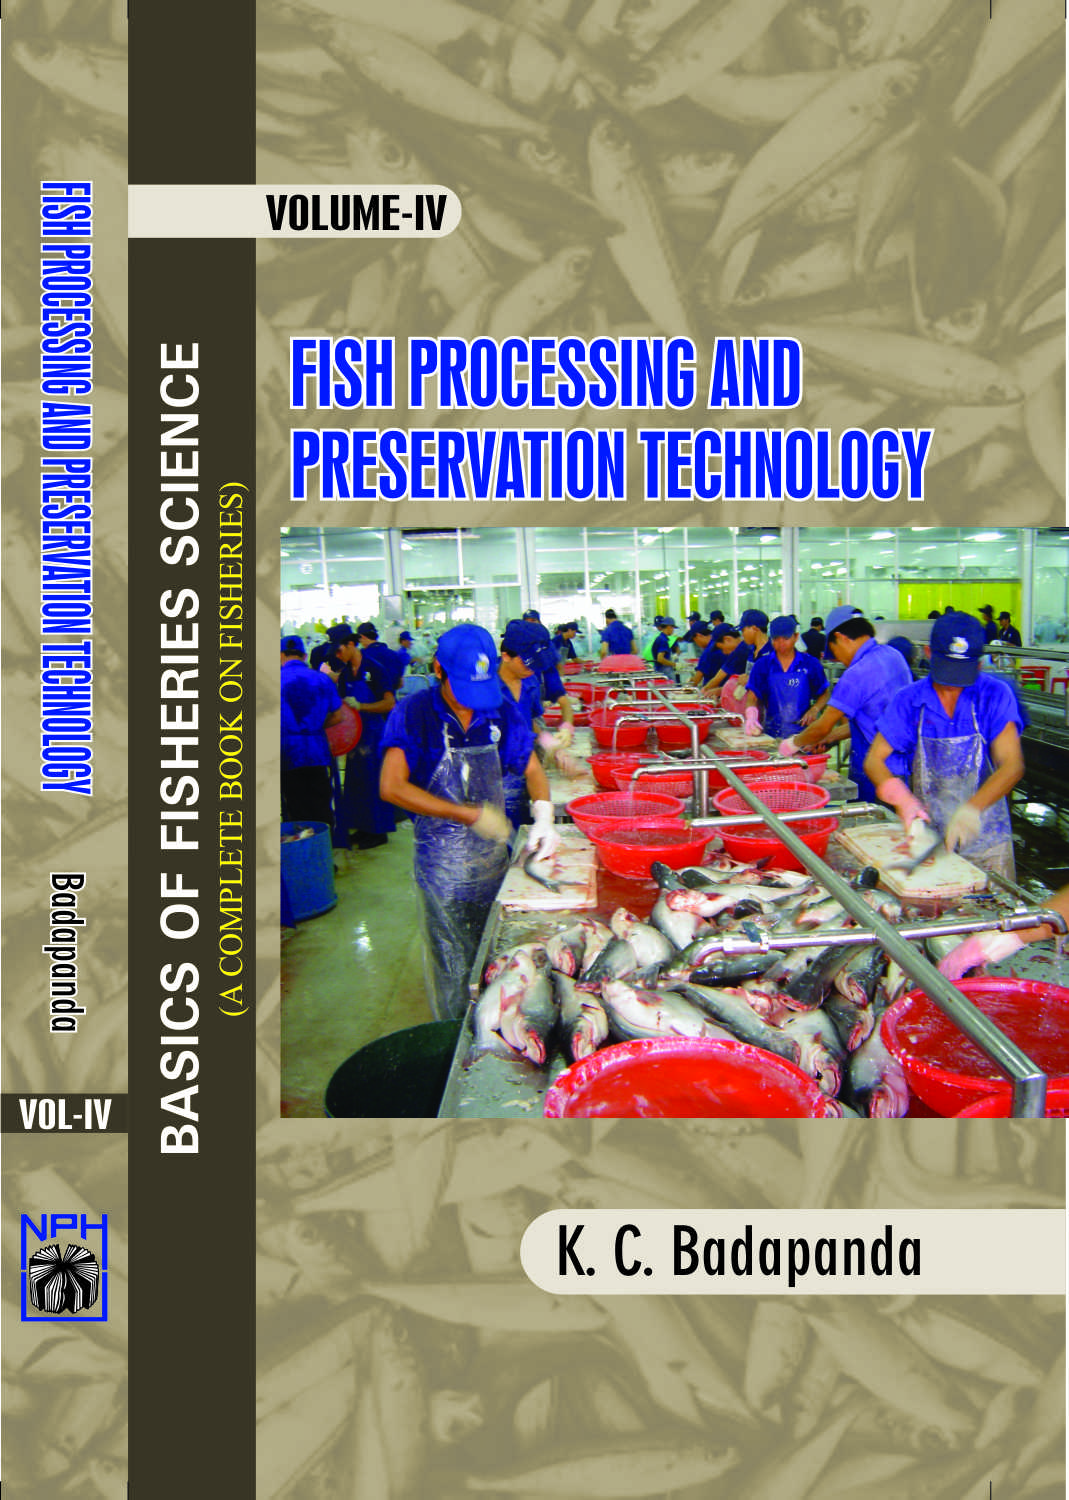 Basics of Fisheries Science : Vol IV Fish Processing & Preventive Technology